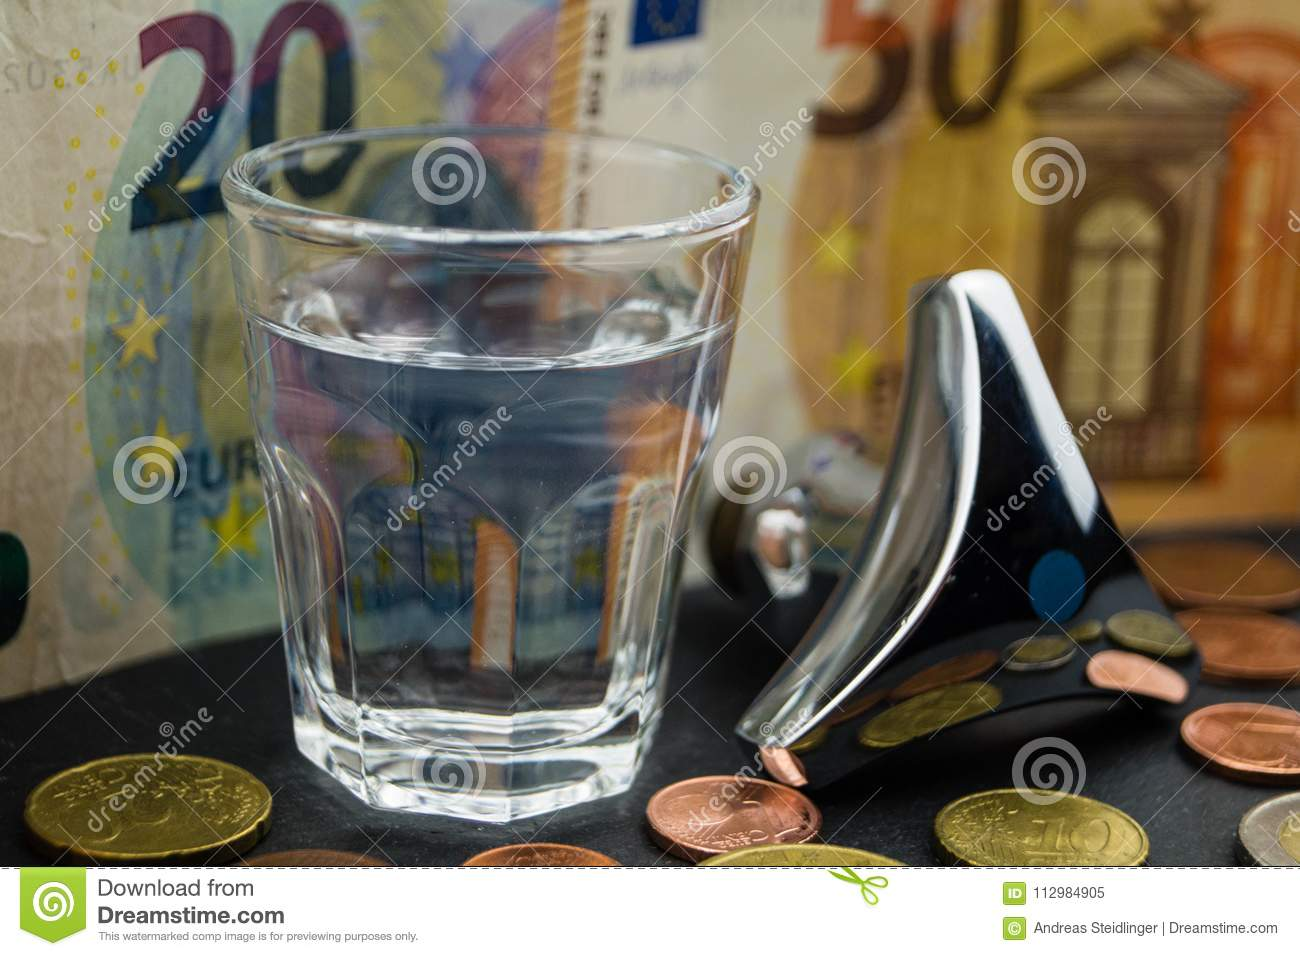 Drinking water costs